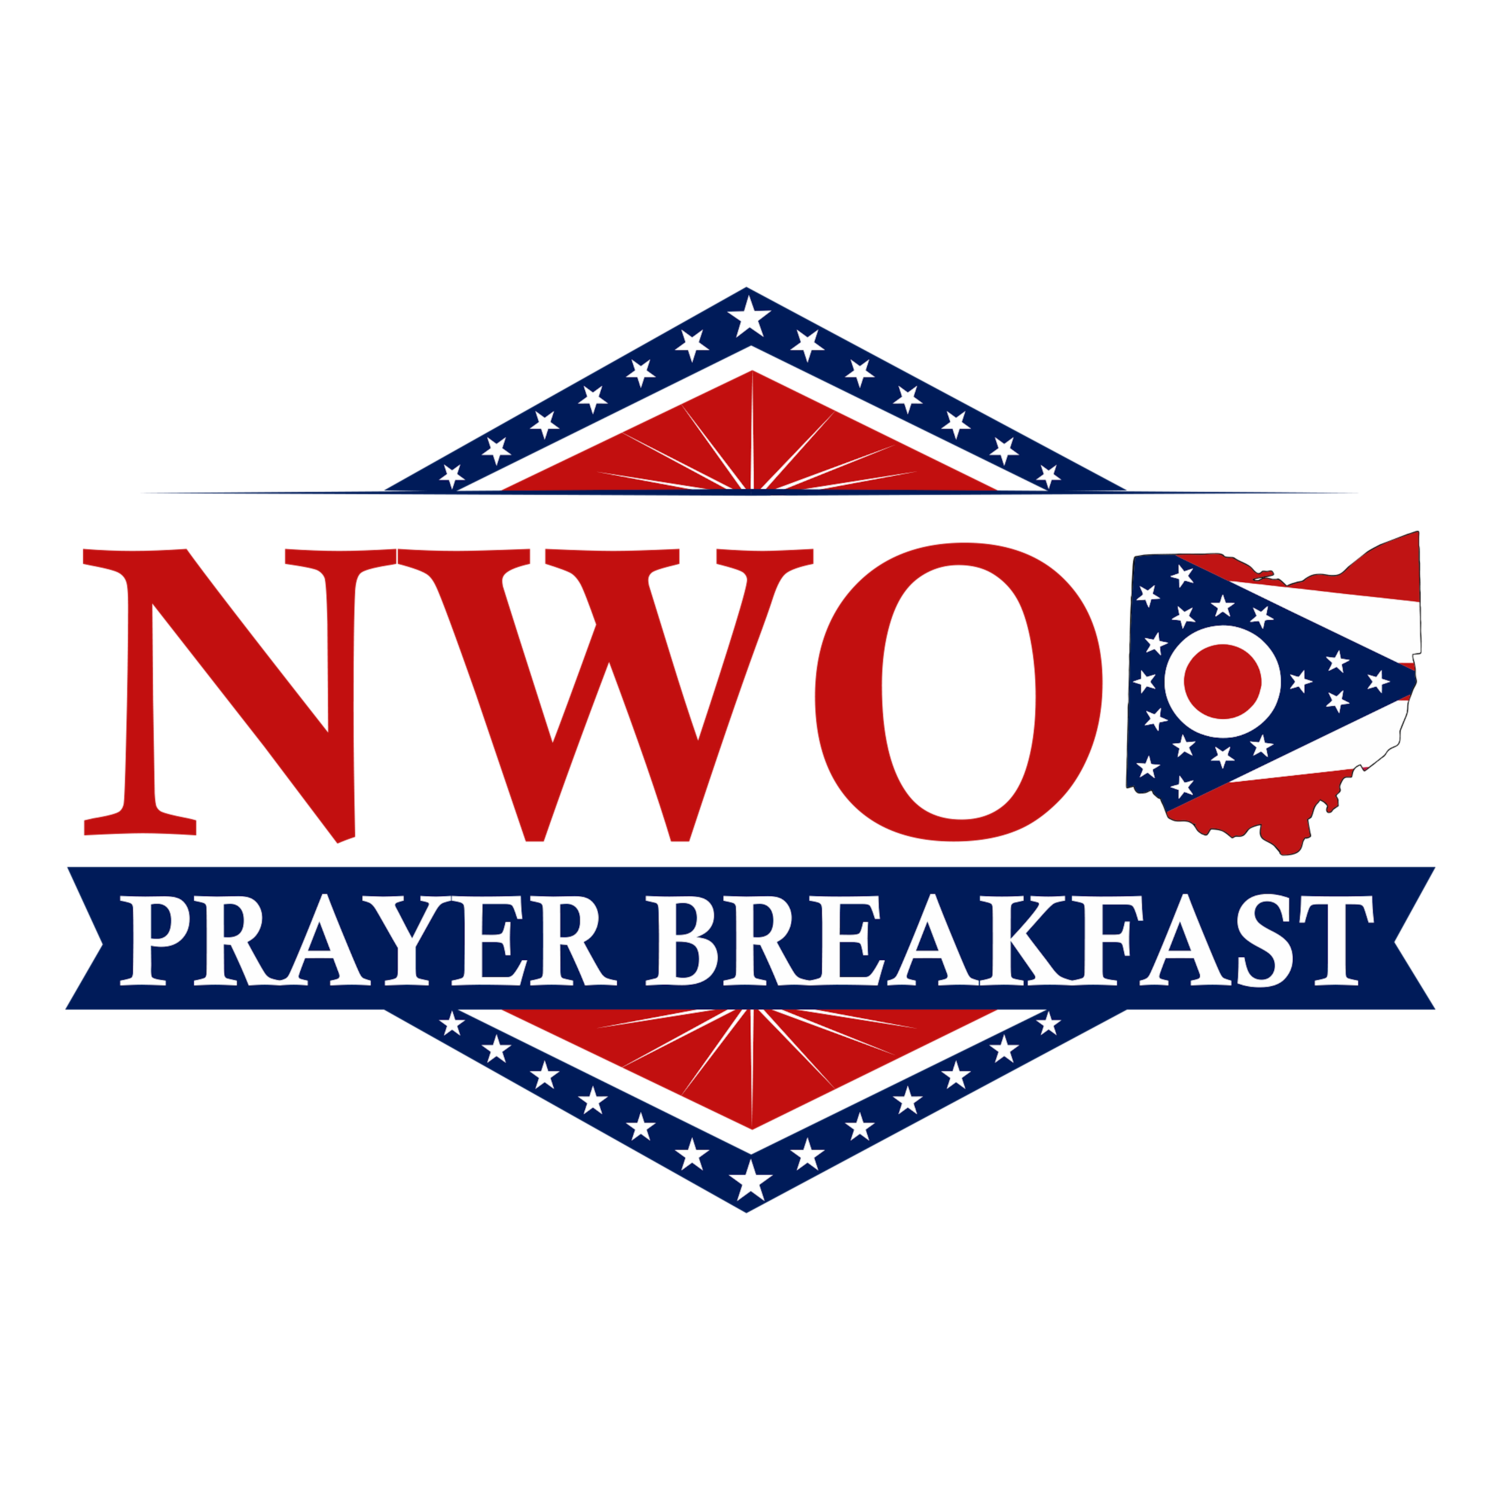 NWO Prayer Breakfast